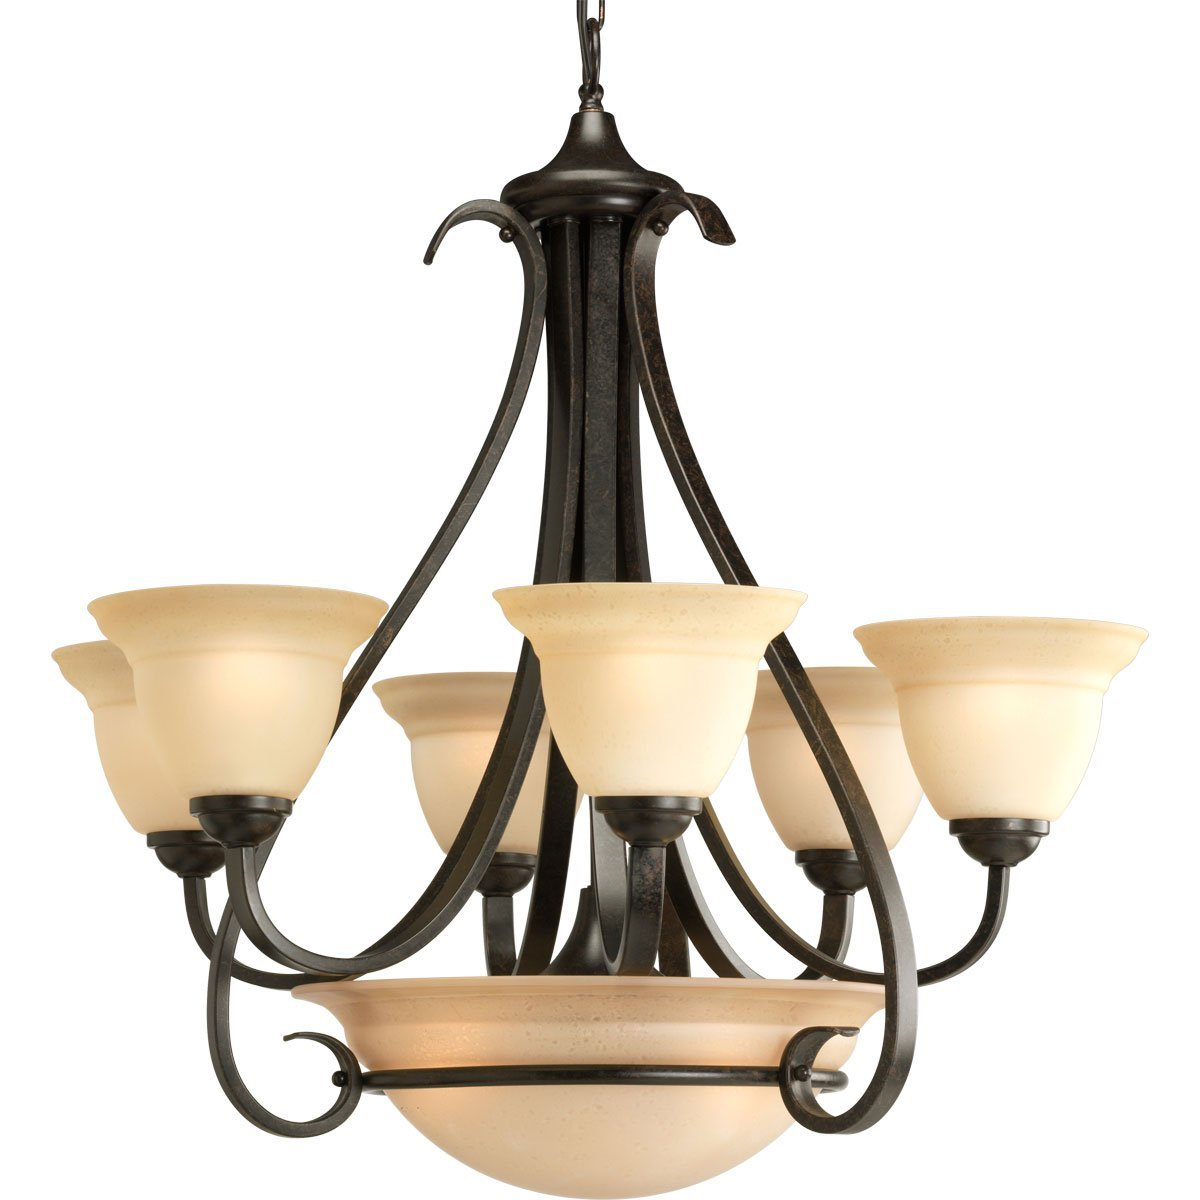 rustic chandeliers & edison chandeliers: guide to the best